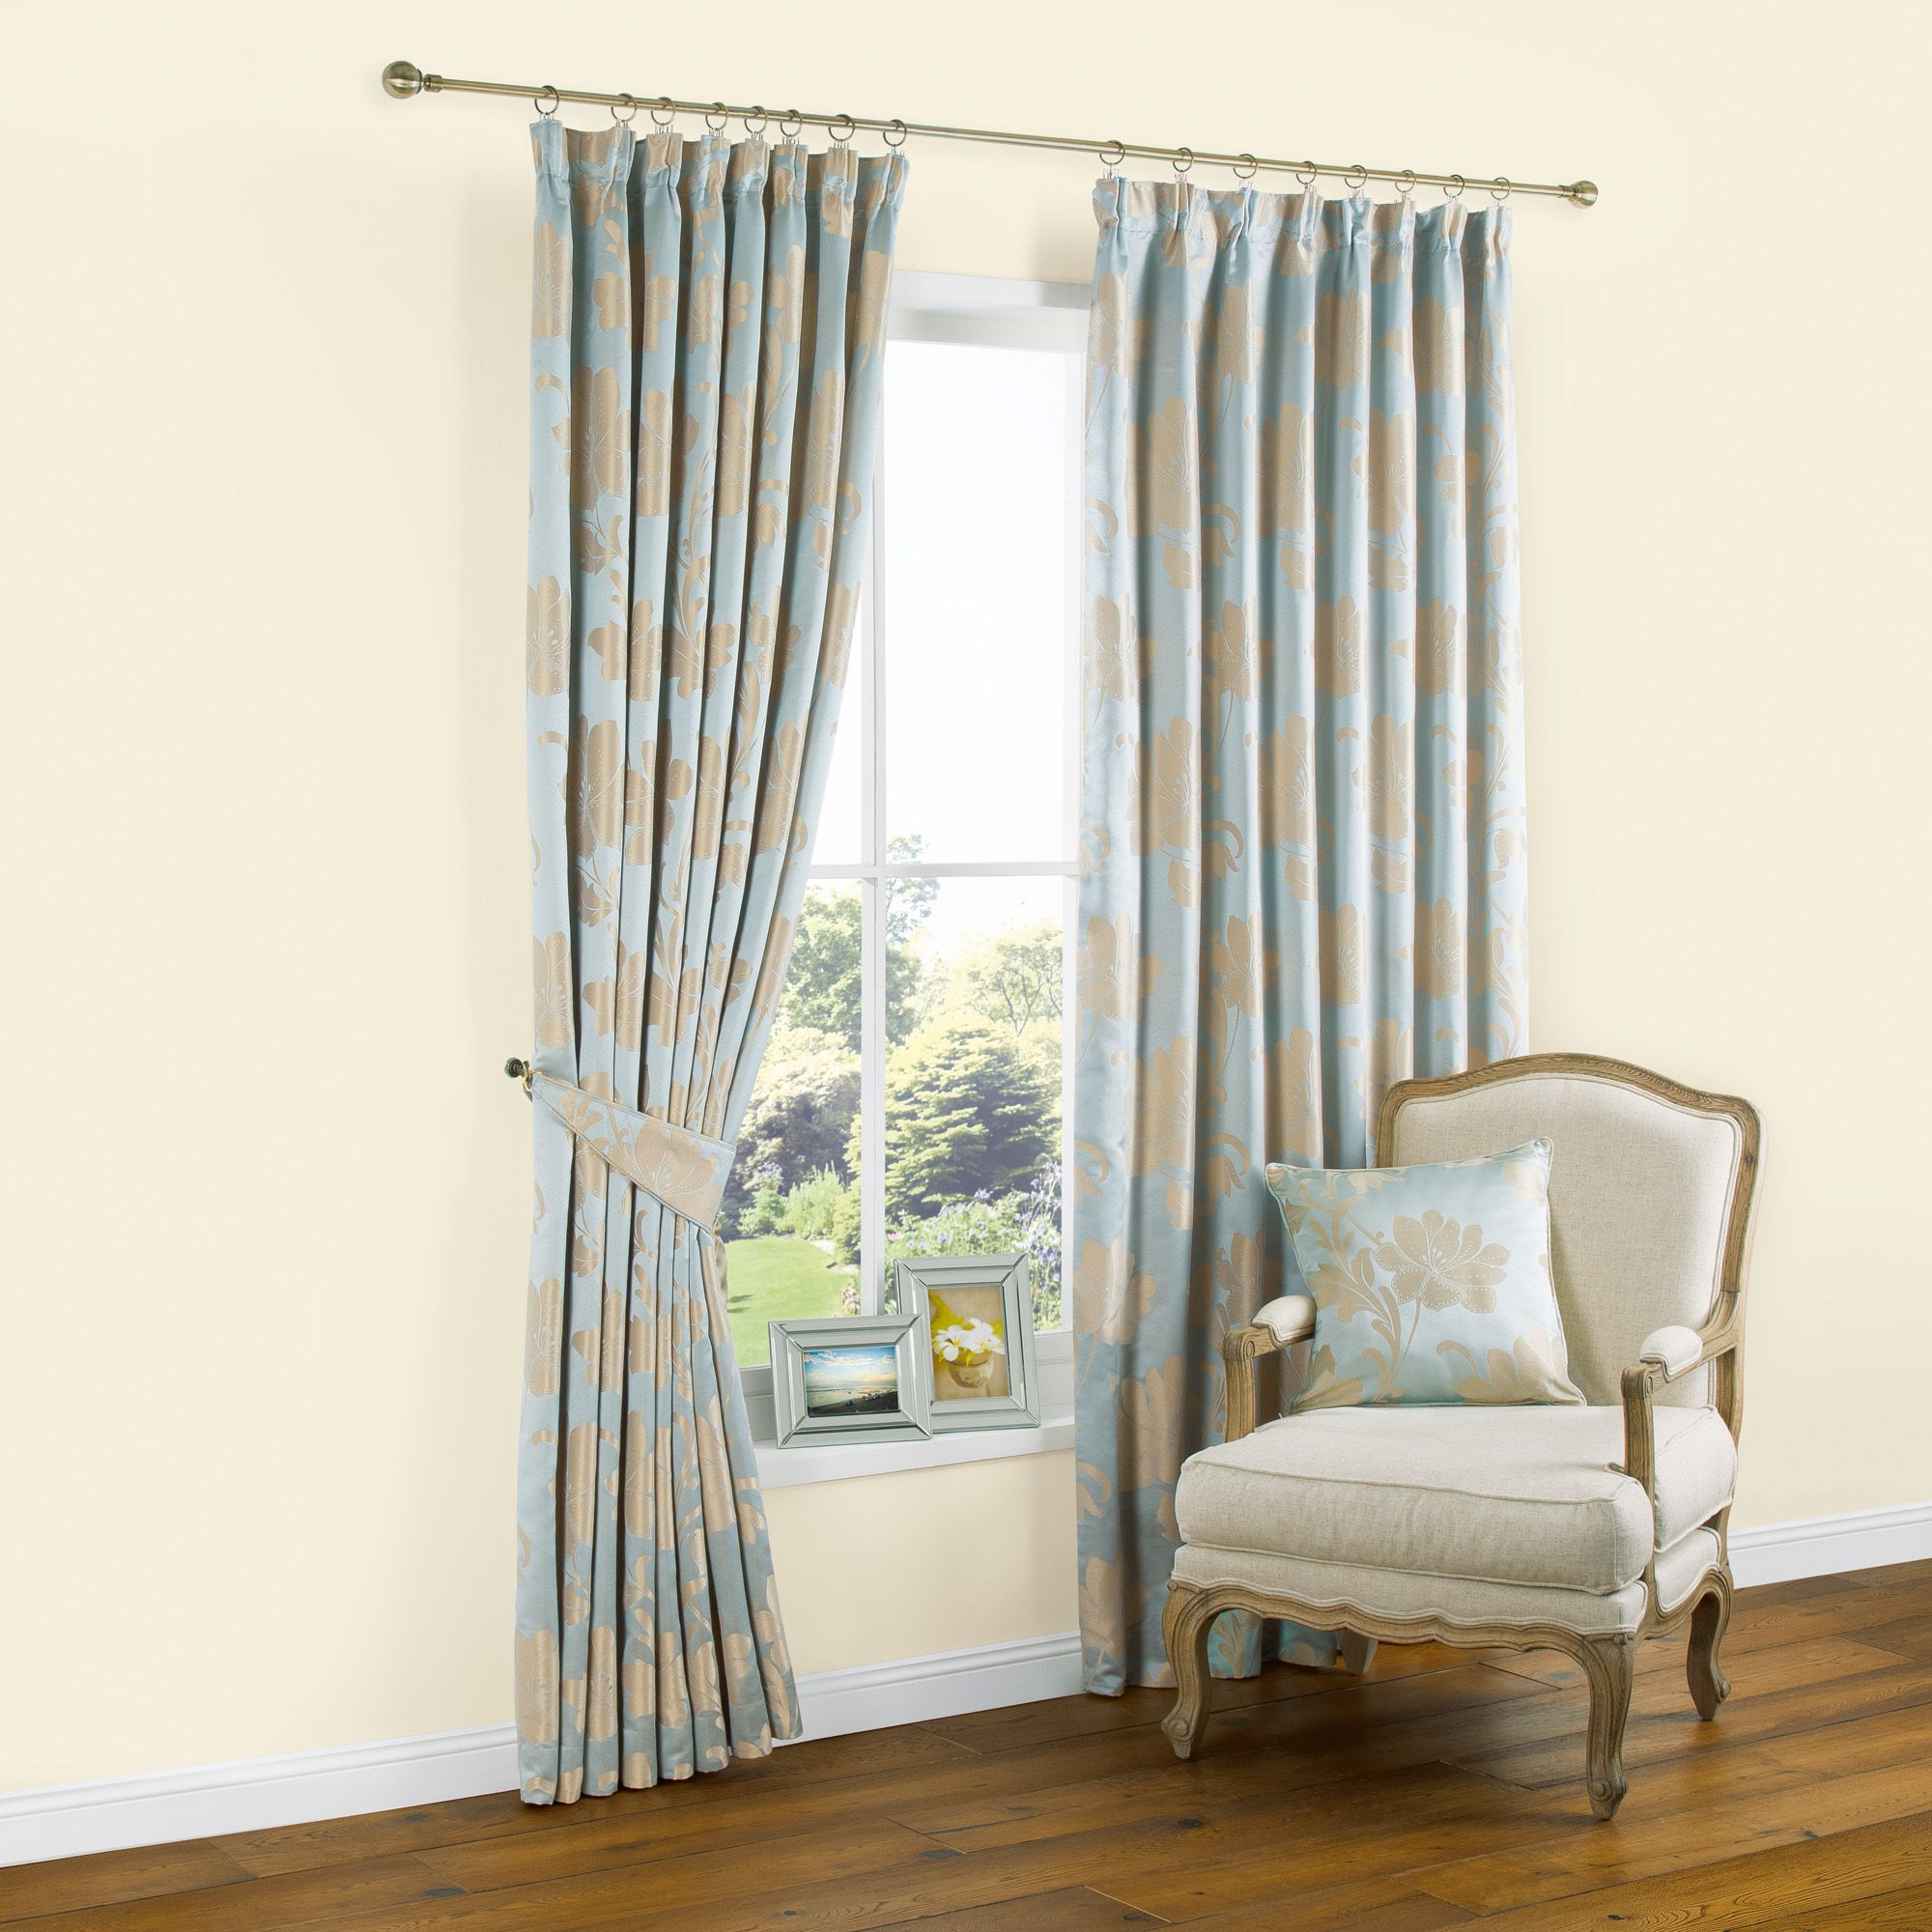 Caraway Duck Egg & Gold Effect Floral Jacquard Pencil Pleat Curtains ...